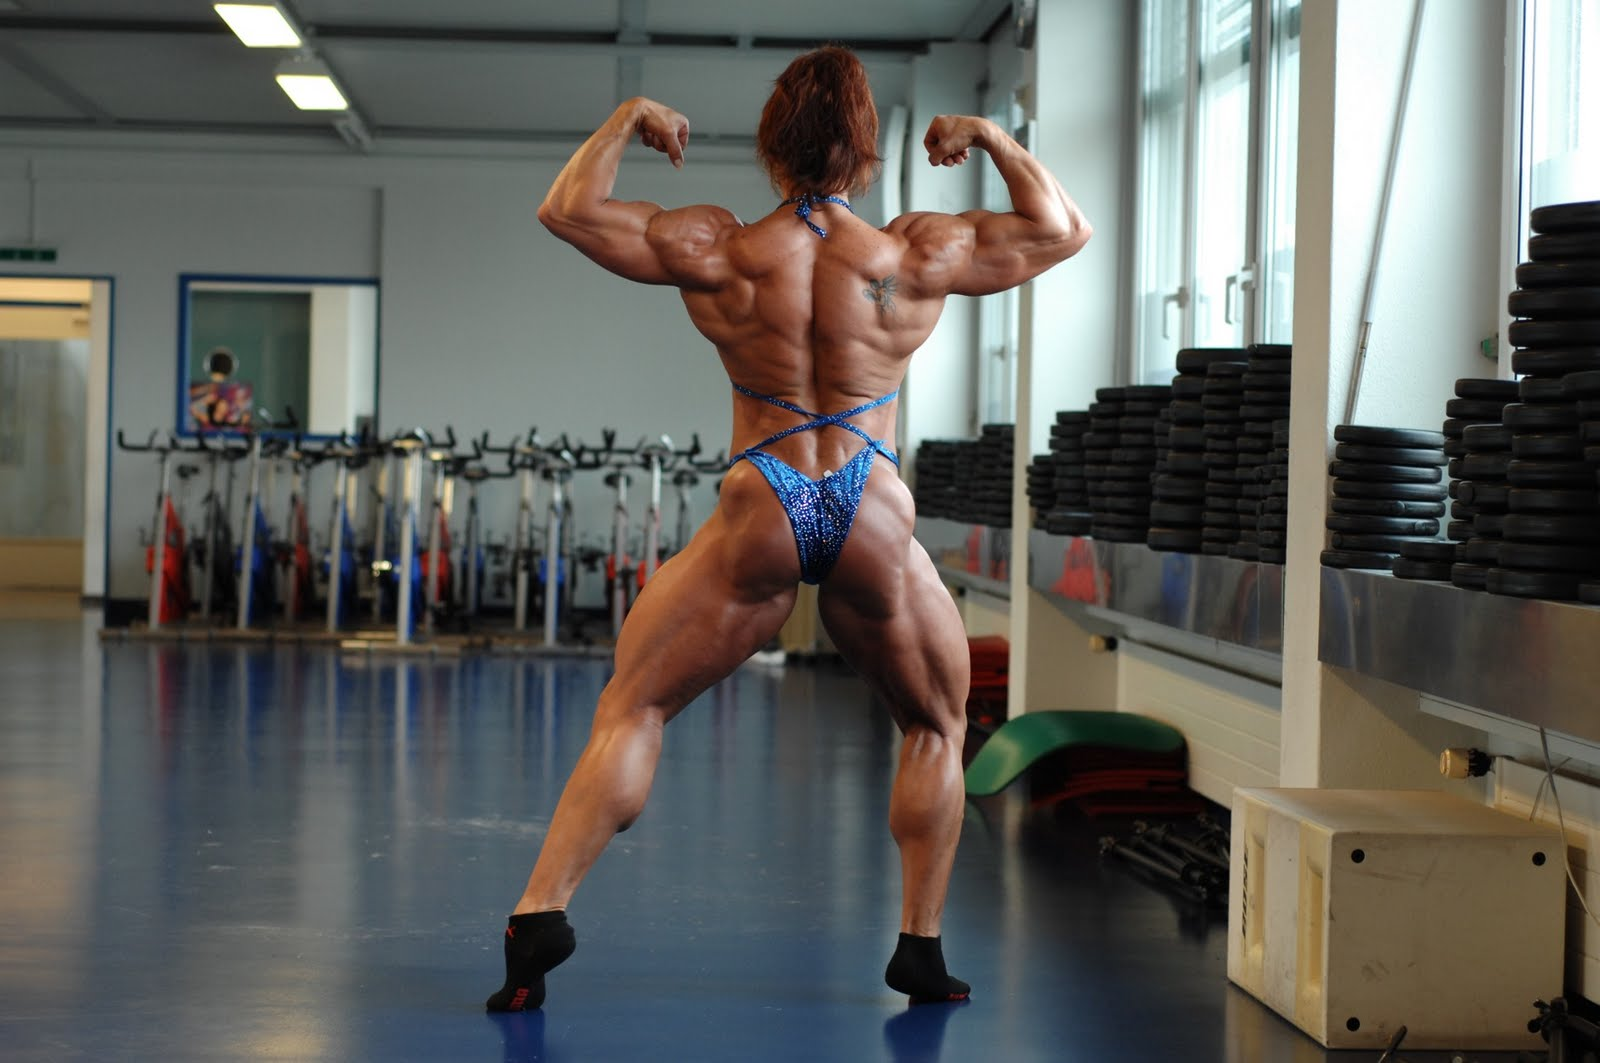 Muscle sexy ladies pics hentia photo